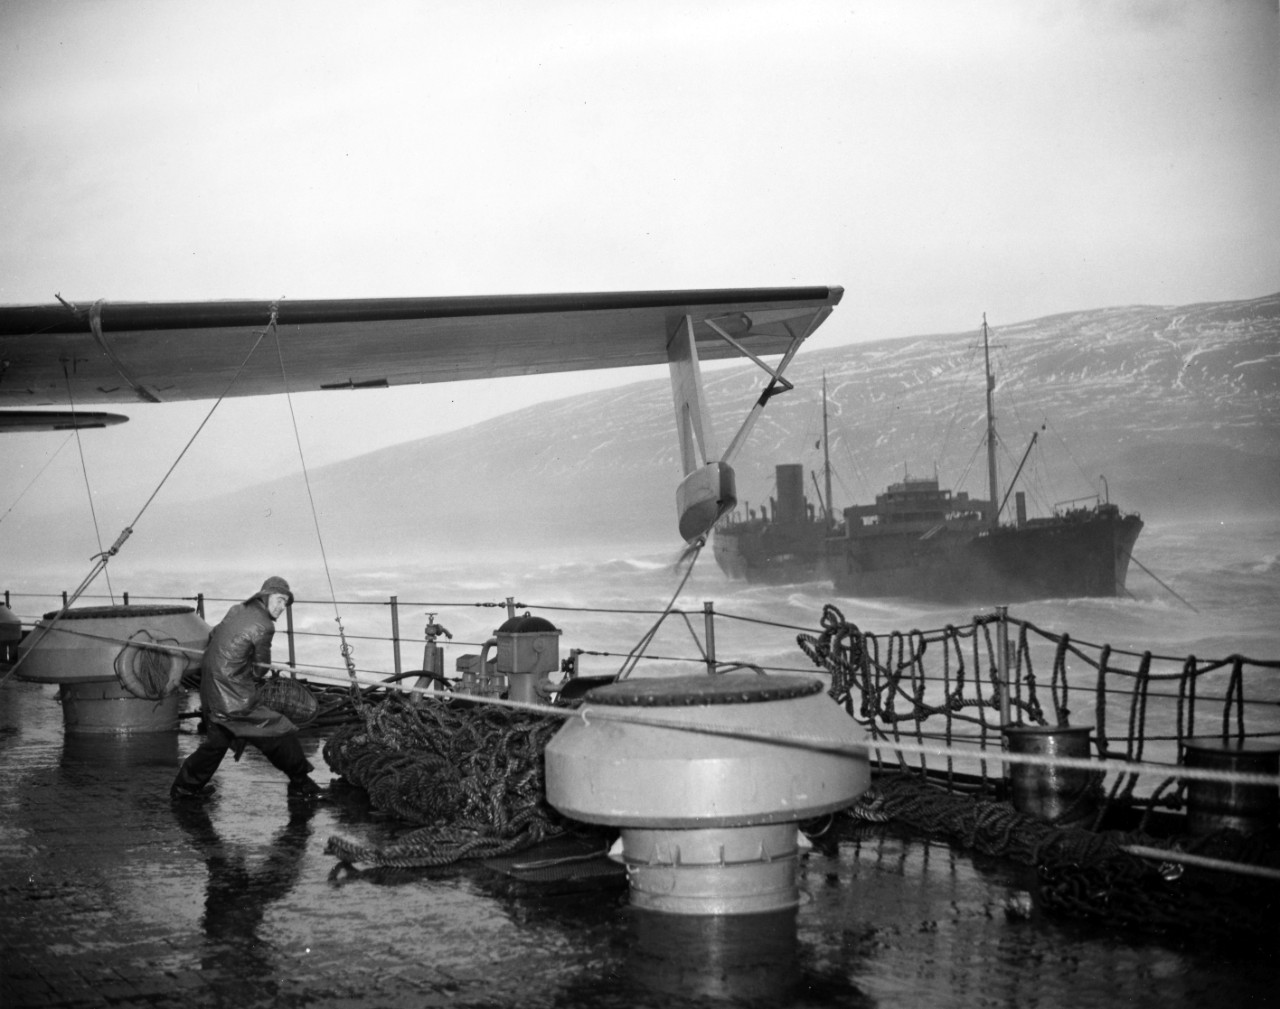 The crew of a seaplane tender struggling to secure seaplanes during a storm off the coast of Hvalfjordur, Iceland. From the VADM Robert C. Giffen Photo Collection.